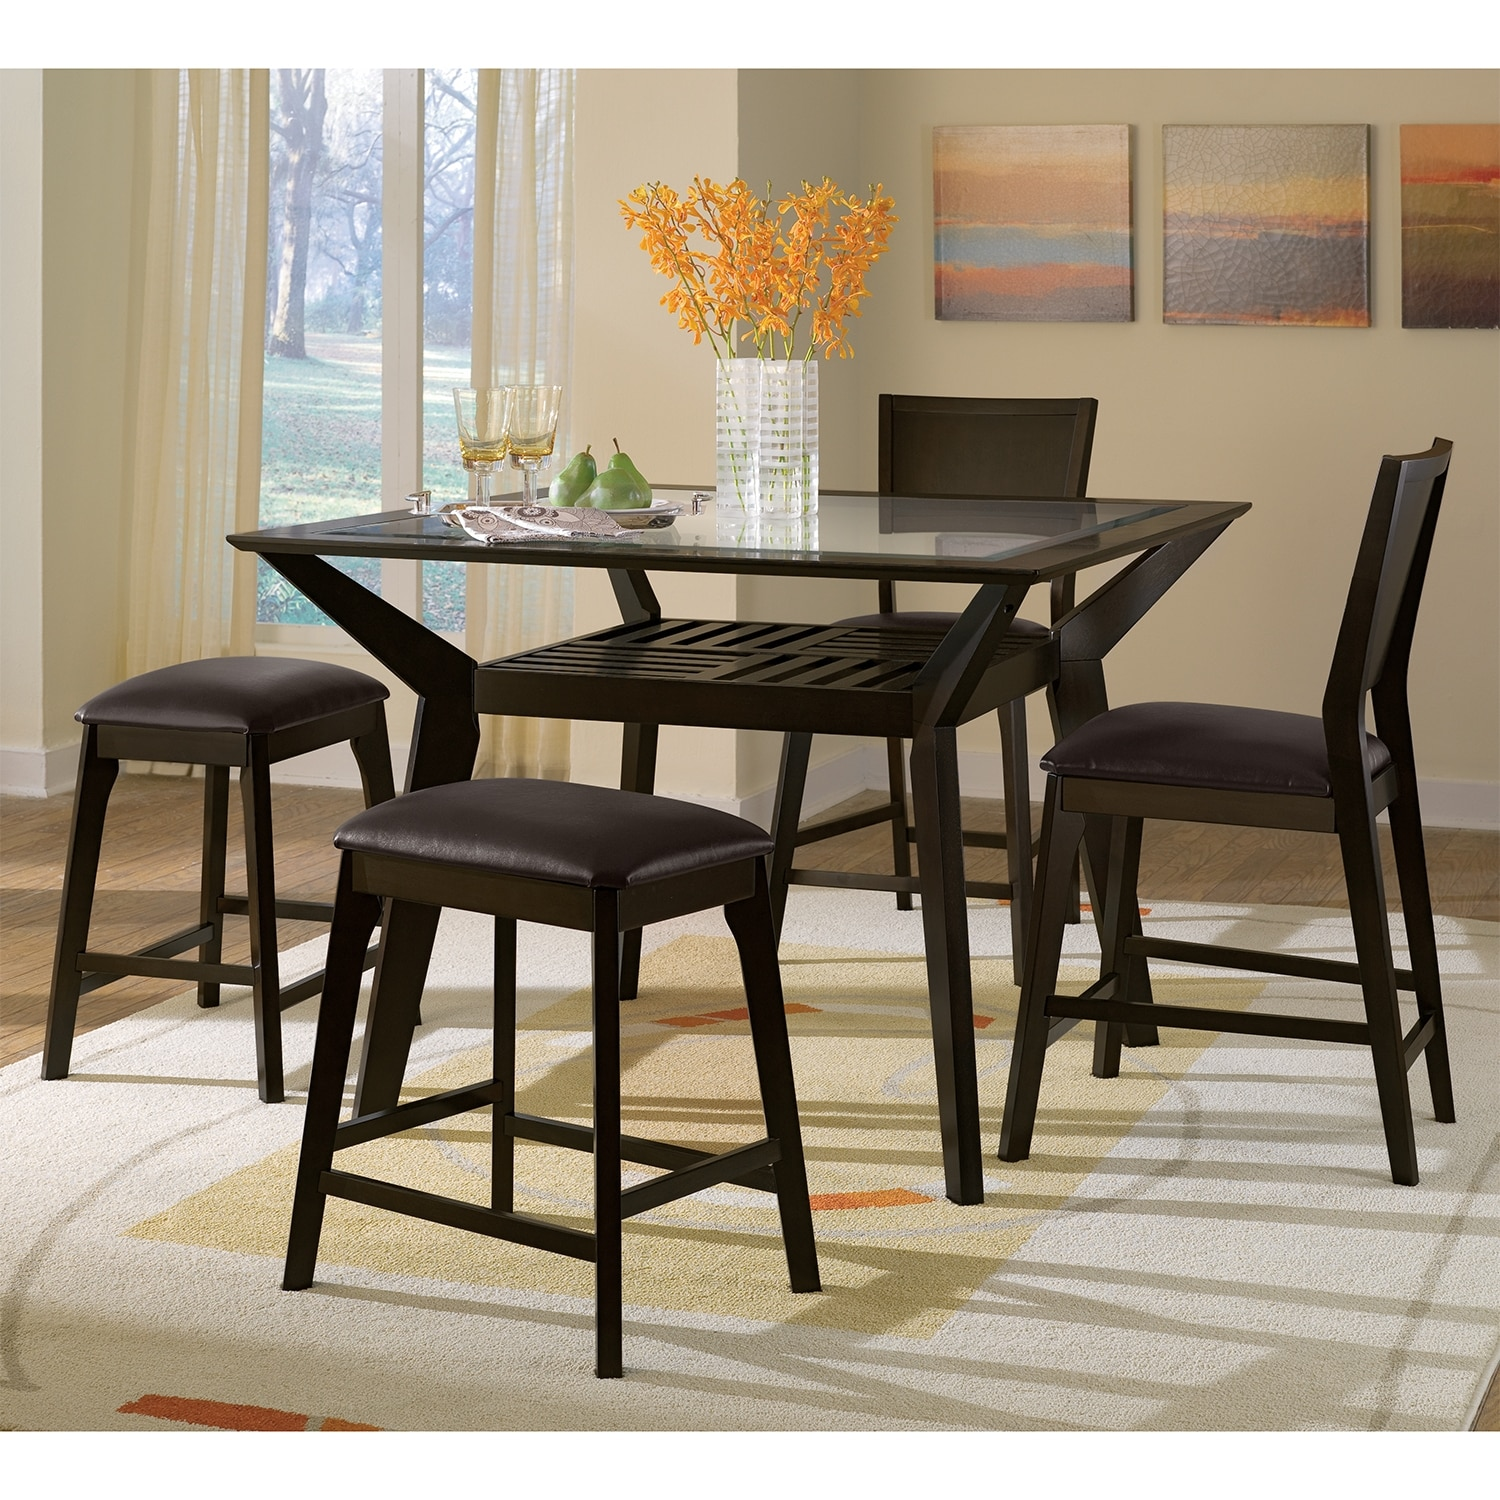 American signature furniture mystic dining room counter height table - Height dining room table ...